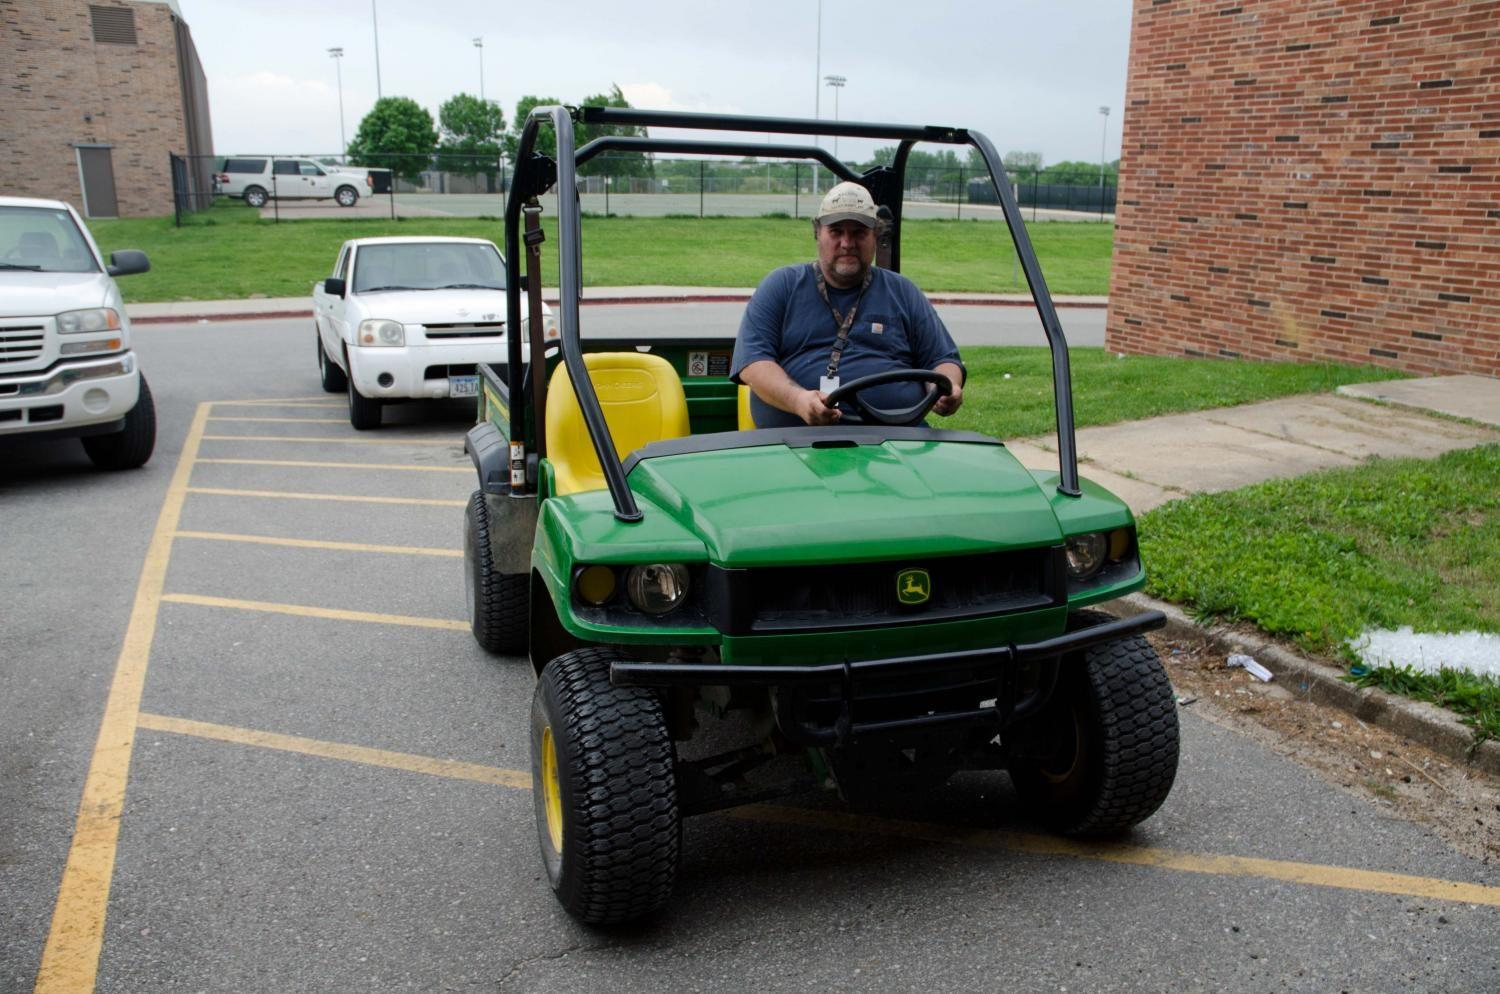 Donnie also loves driving the Gator down to the soccer games to set things up before they start.